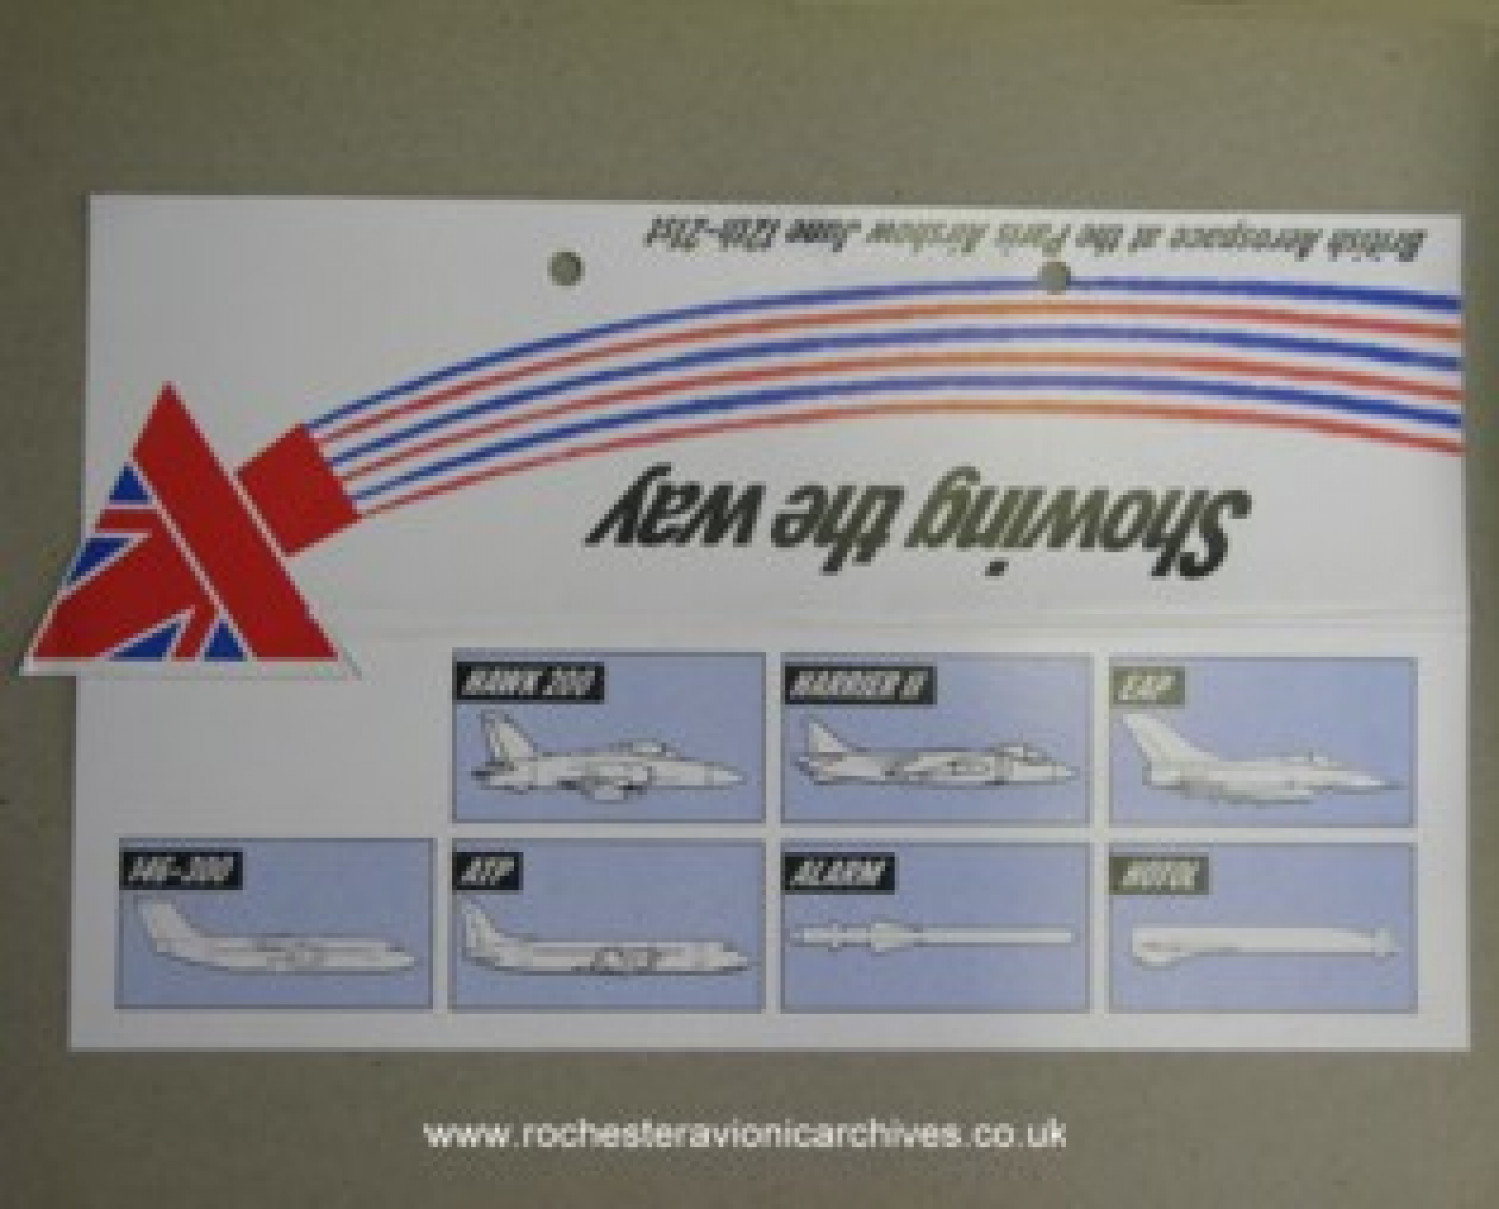 British Aerospace Paris Airshow Display Card